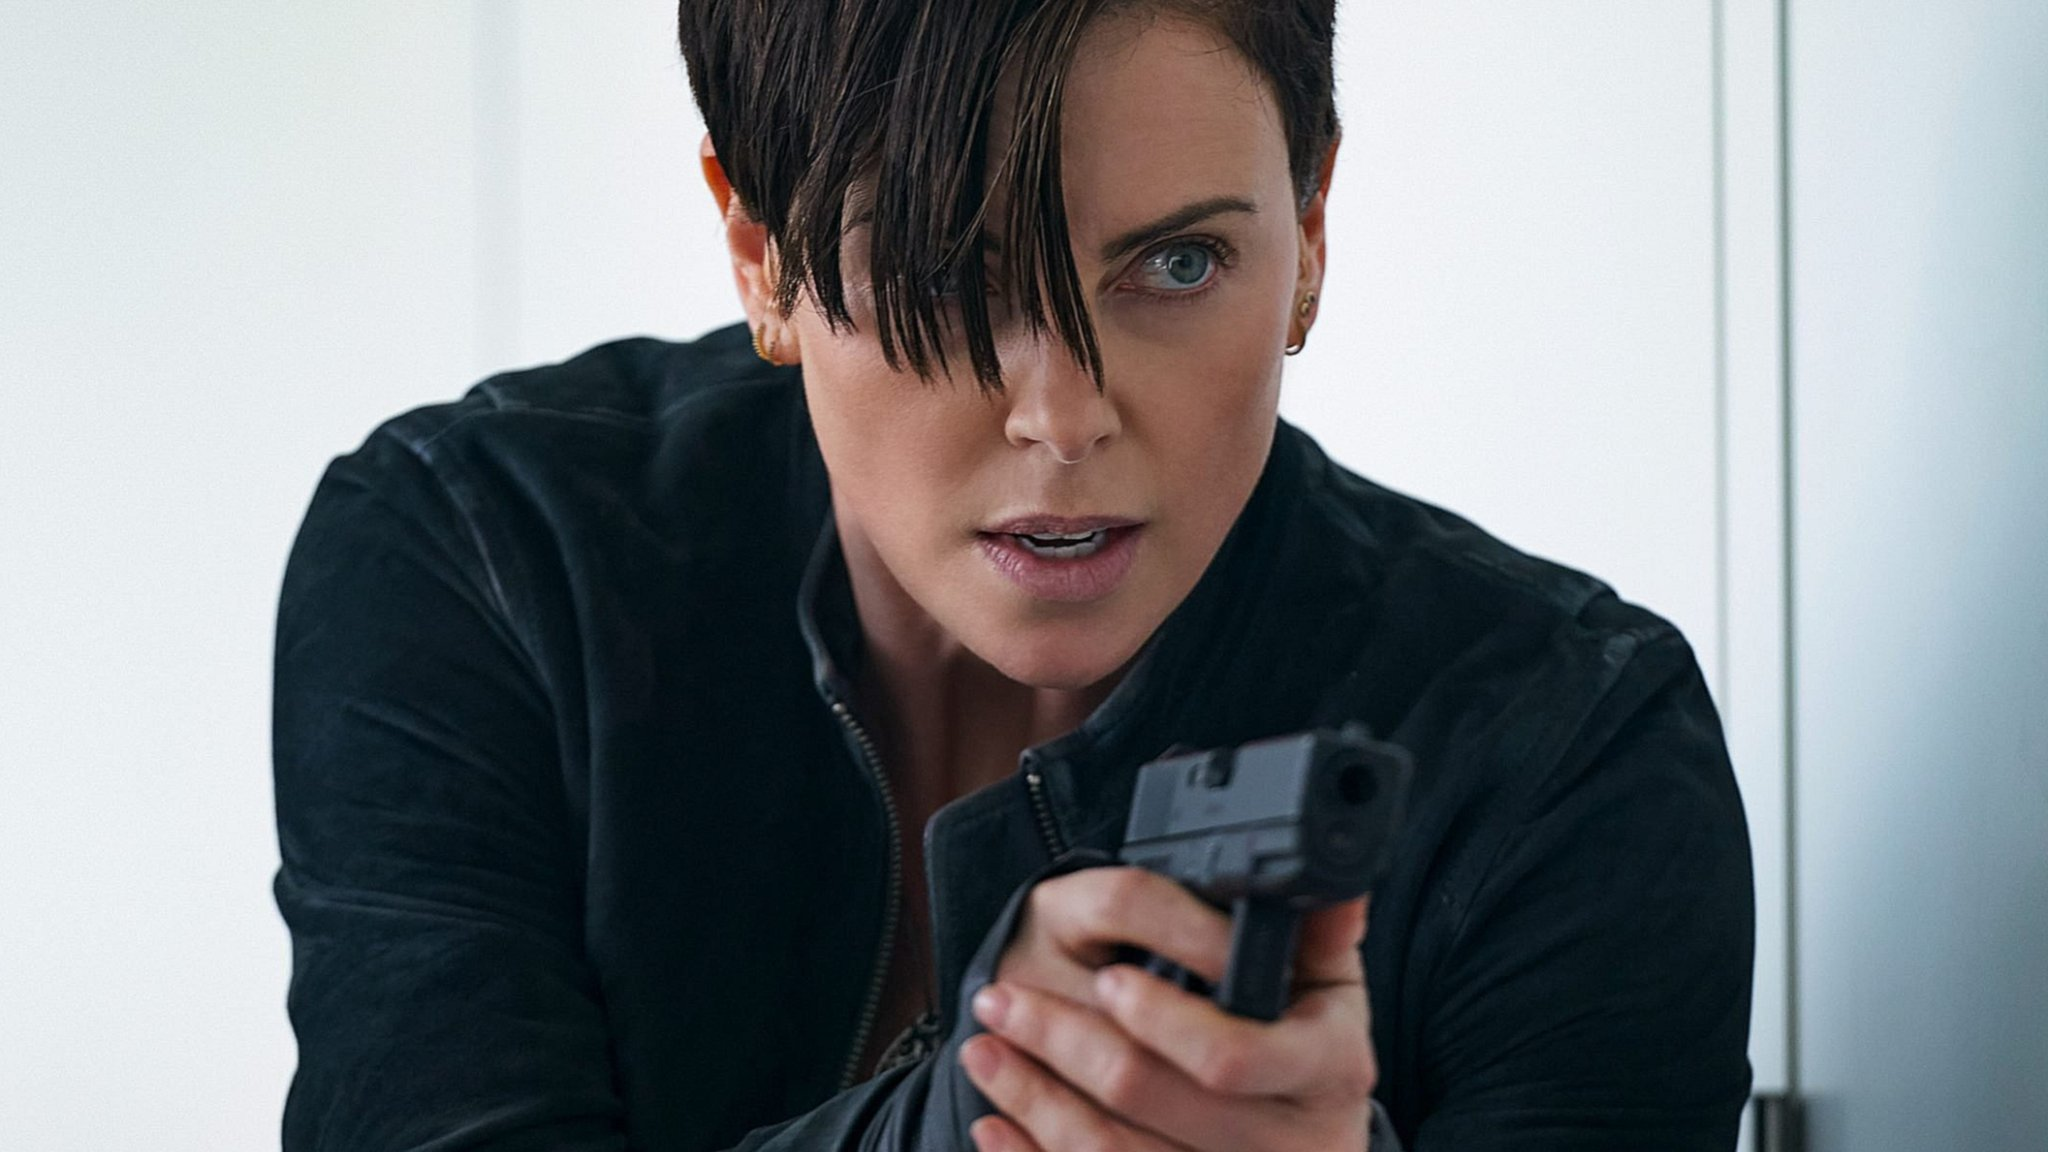 A Sexy Charlize Theron Movie And 10 Other New Free To Watch Online Movies - cover